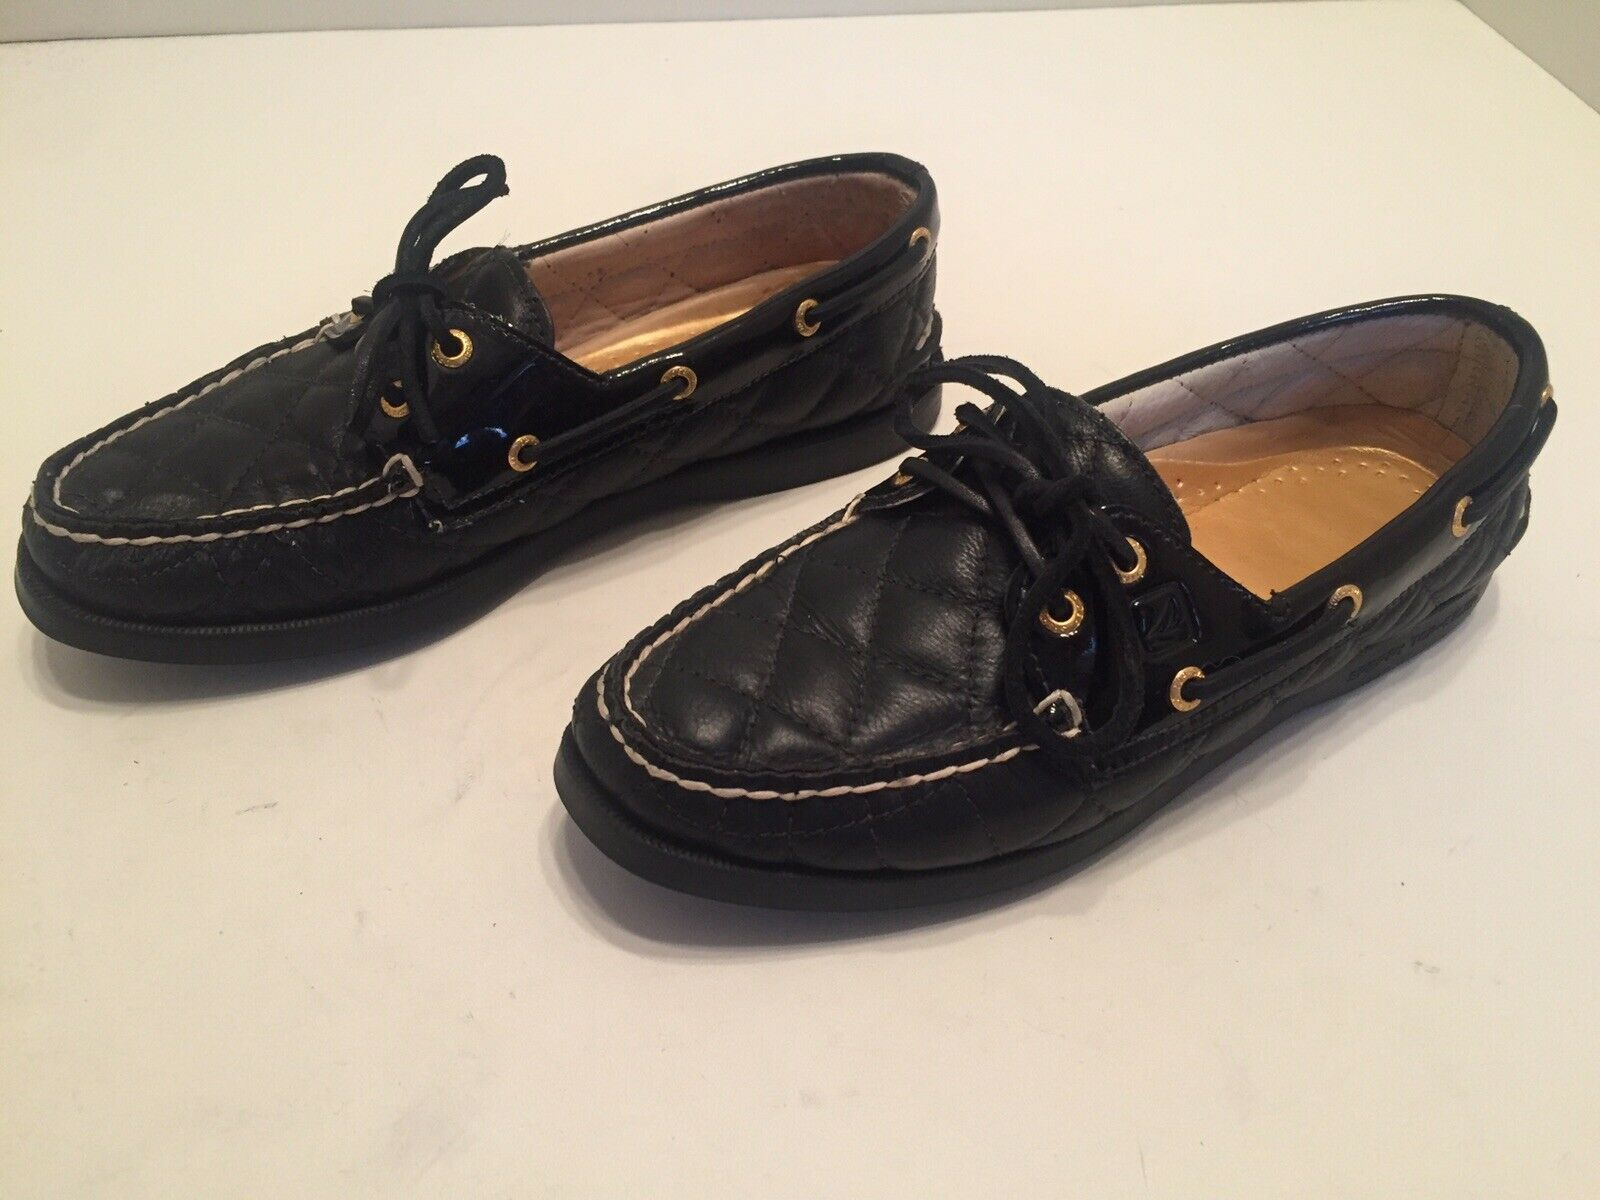 Sperry Top Sider Boat Shoes Black Quilted Leather Moc Toe Women's Size 6.5 M